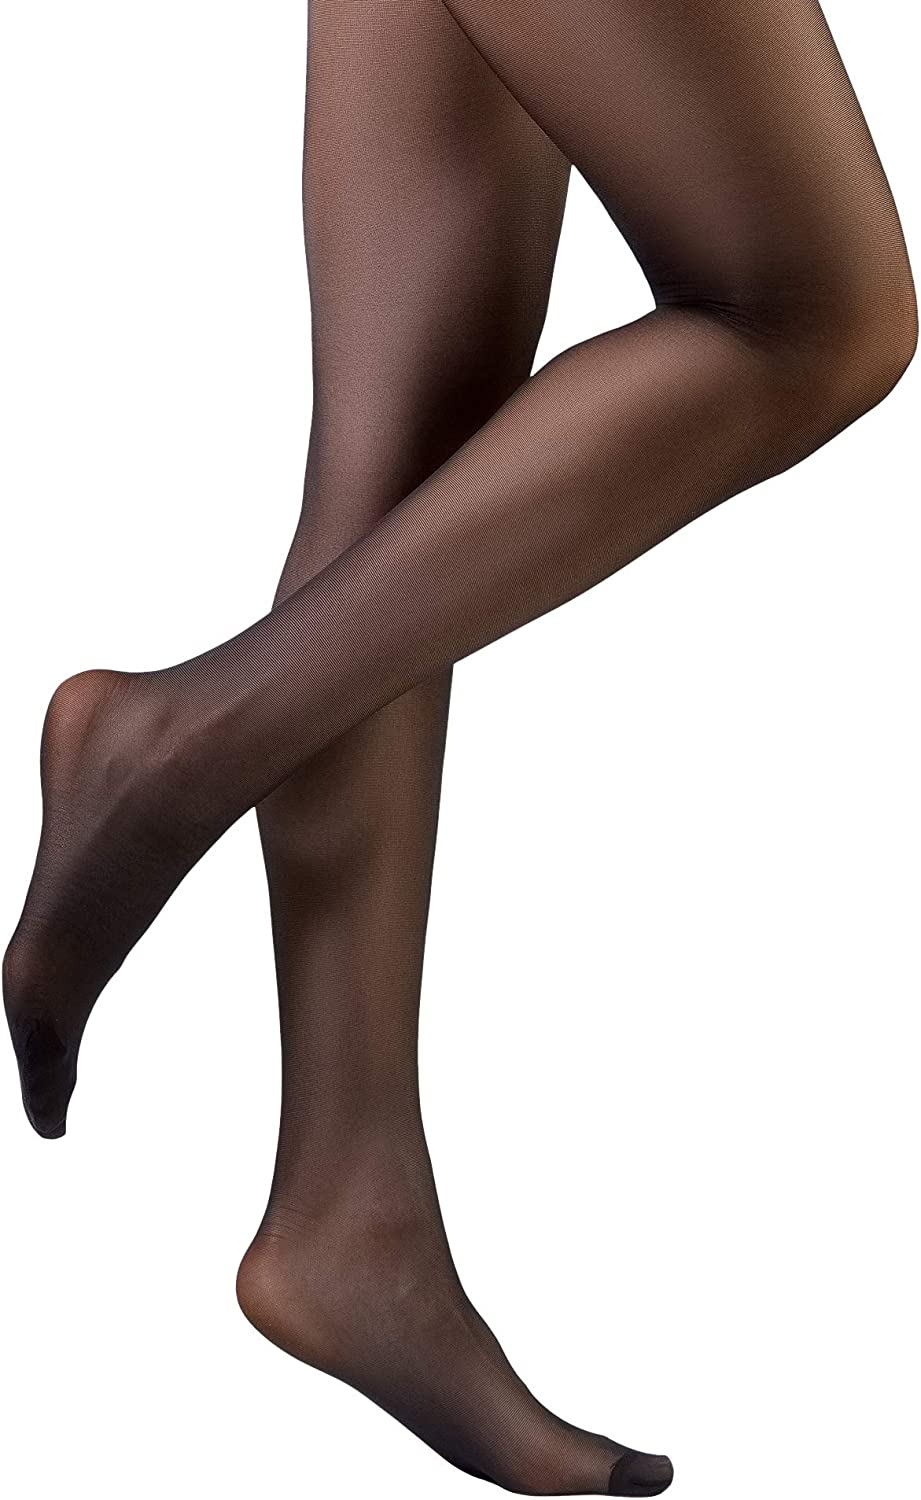 Sun fashion Women's 20D High Elastic Everyday Regular Tights Sheer Footed Panty Hose 10 Pairs